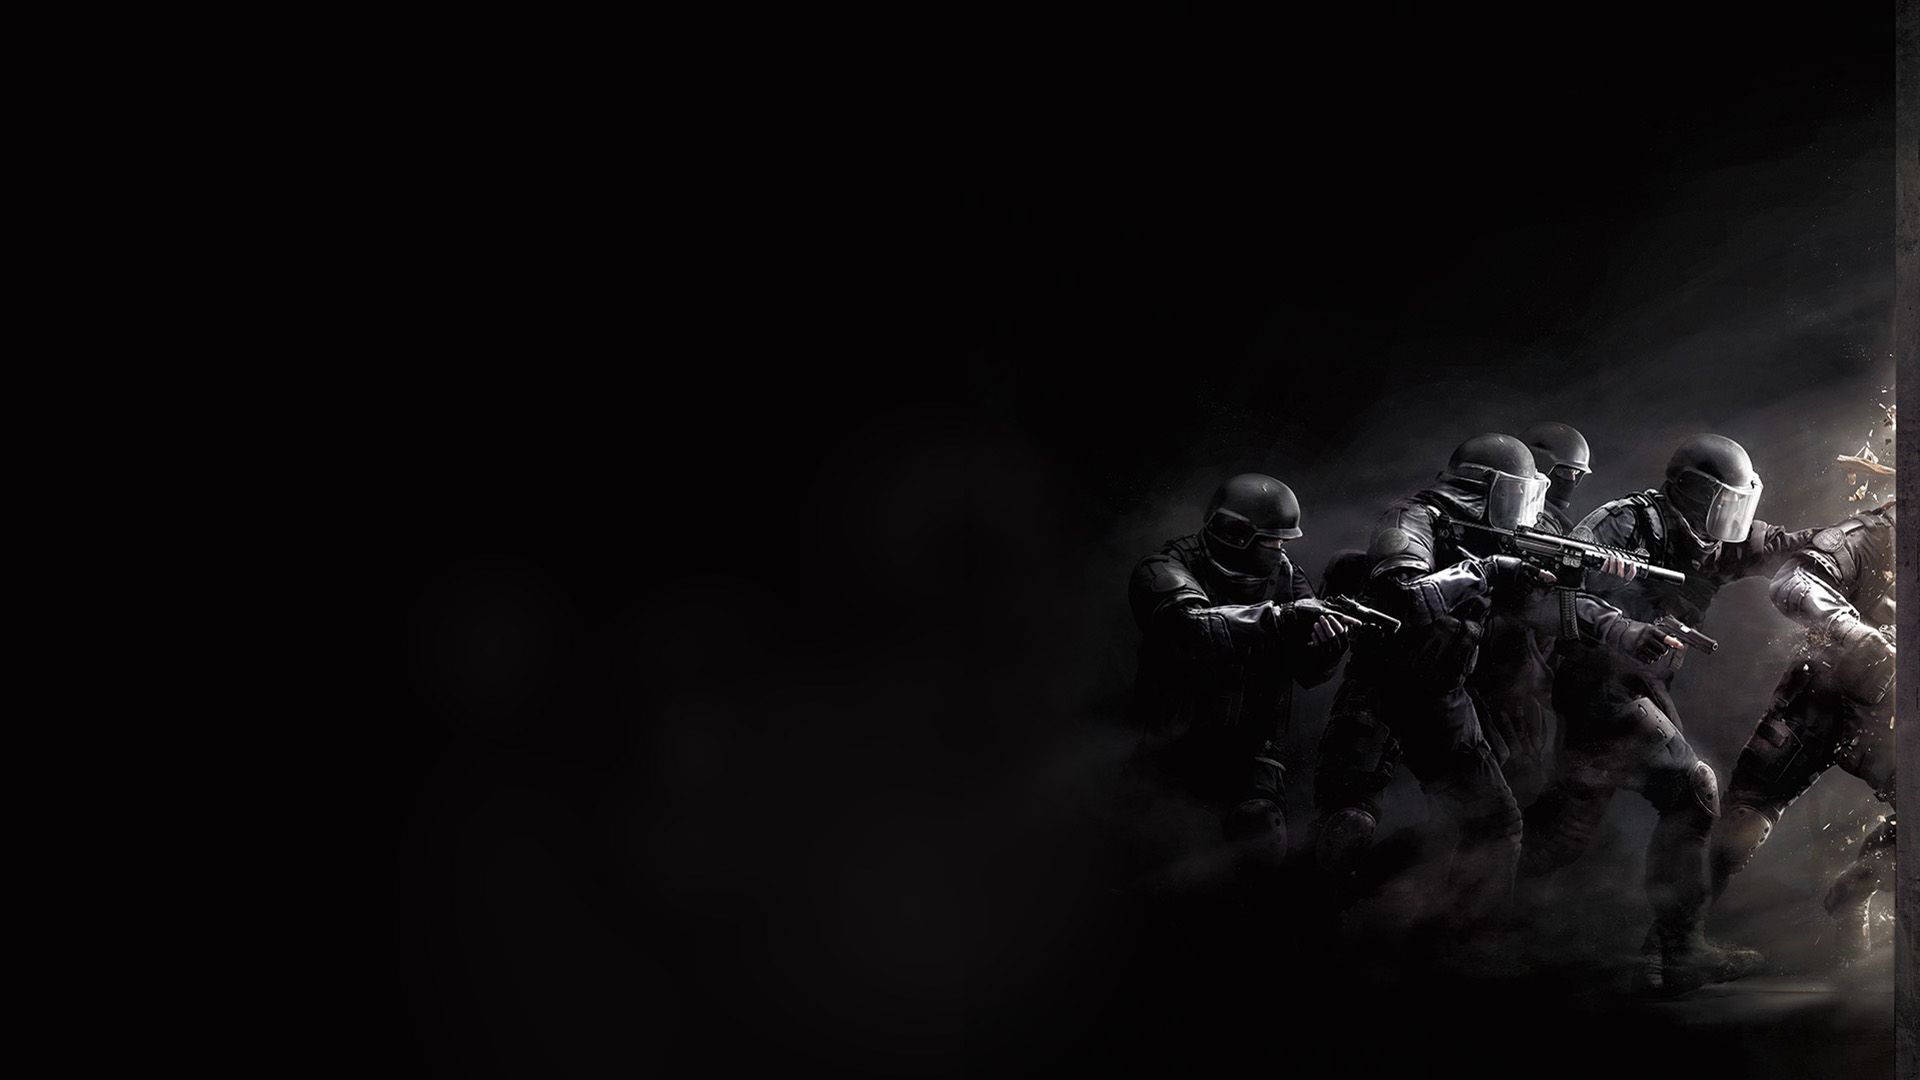 R6 S Wallpapers For Dual Monitors By My Friend Vyndist 1920x1080